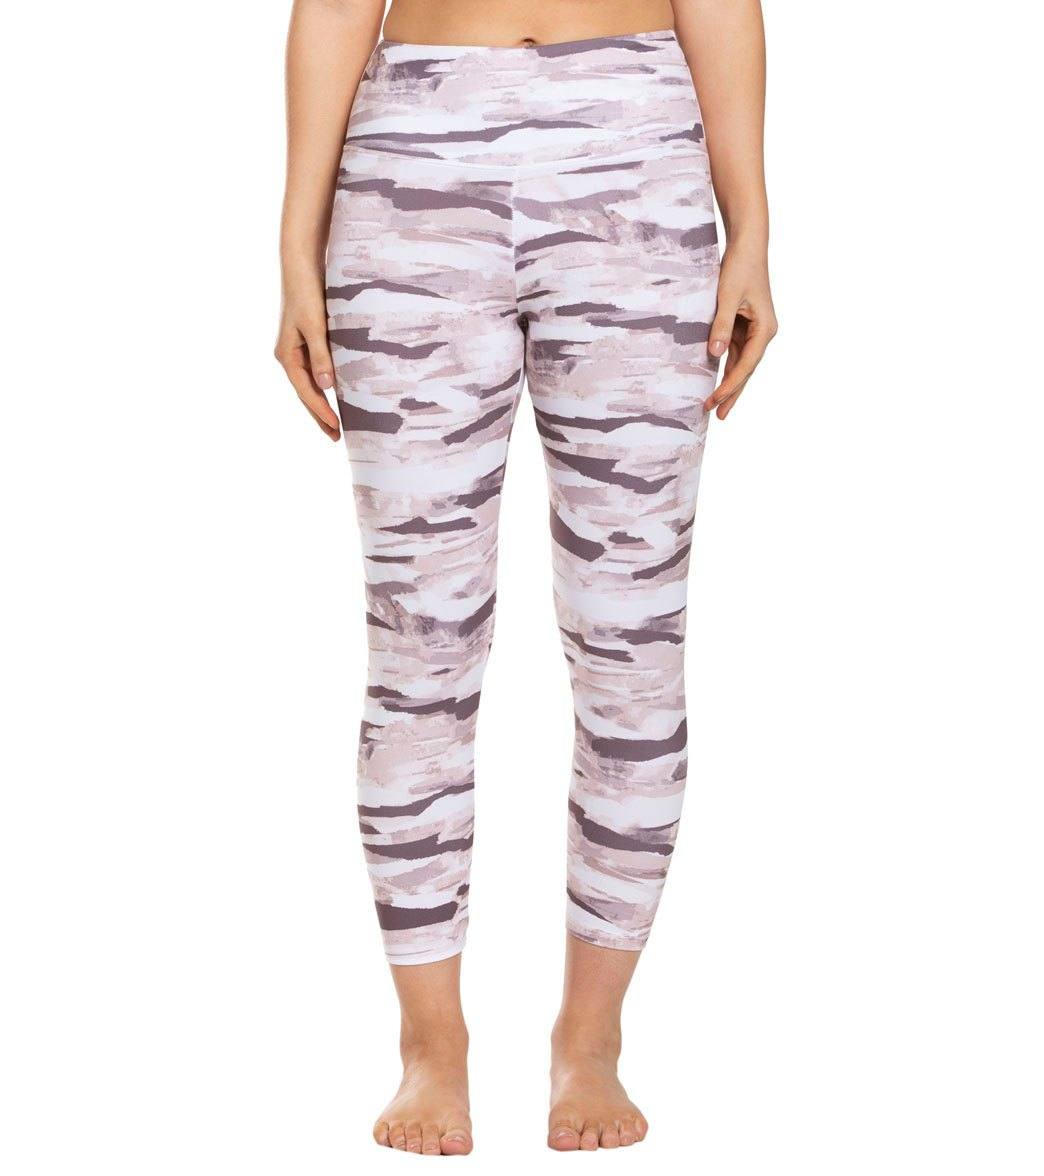 Balance Collection Printed High Waisted Yoga Capri Pants - Lotus Horizon Collage Cotton